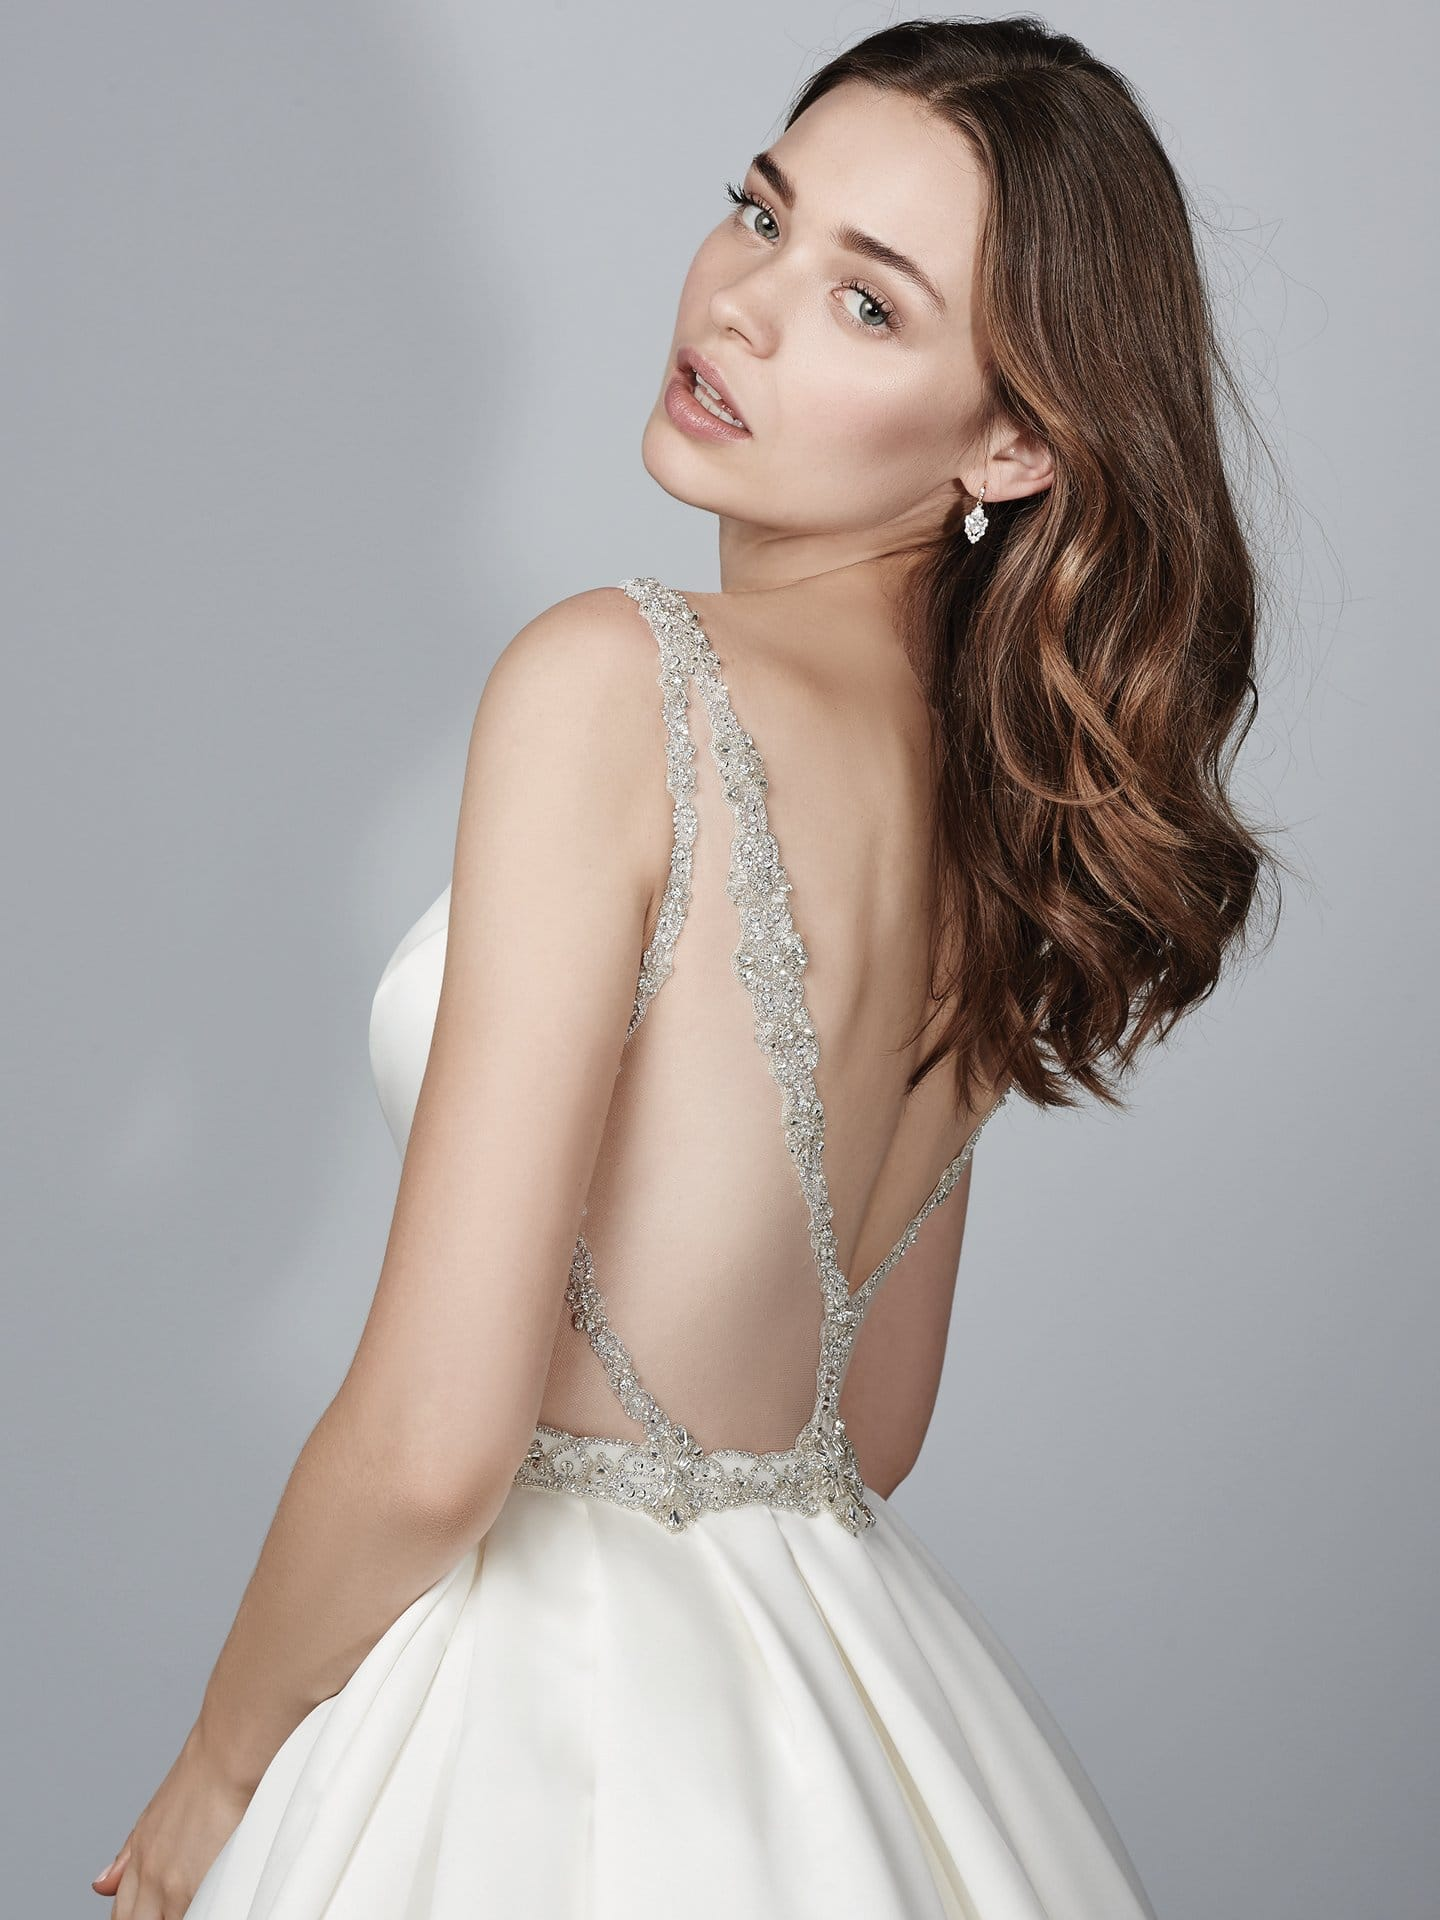 Beautiful statement-back wedding dresses from Maggie Sottero and Sottero and Midgley - Kiandra wedding dress with Jersey lining for a luxe, breezy and figure-flattering fit.